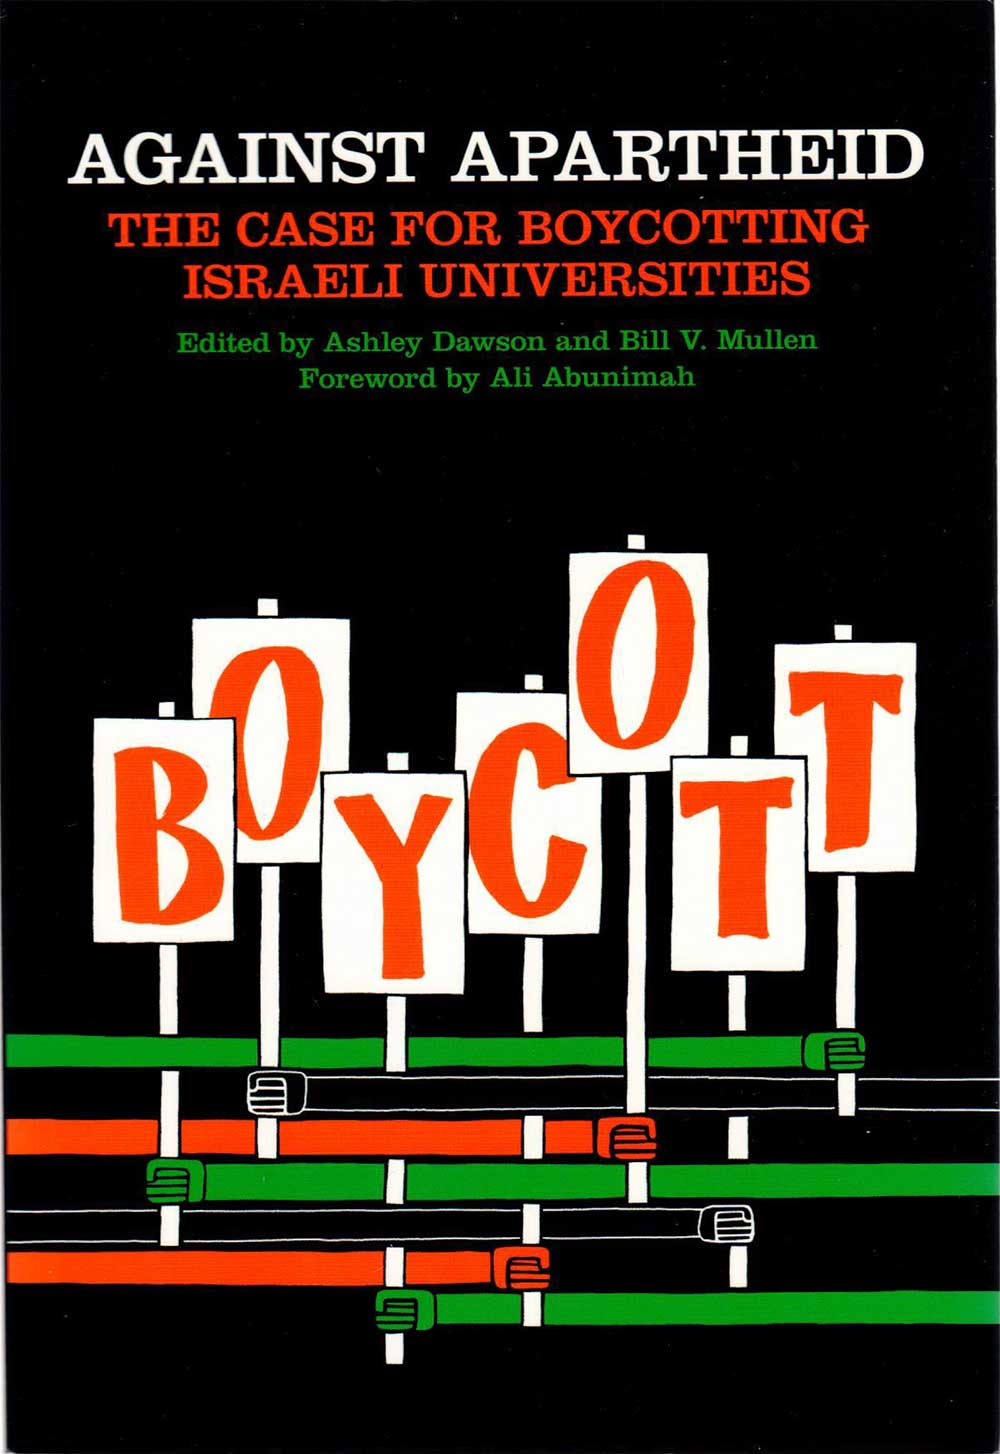 mullen-book-cover8-against-apartheid-1000px.jpg